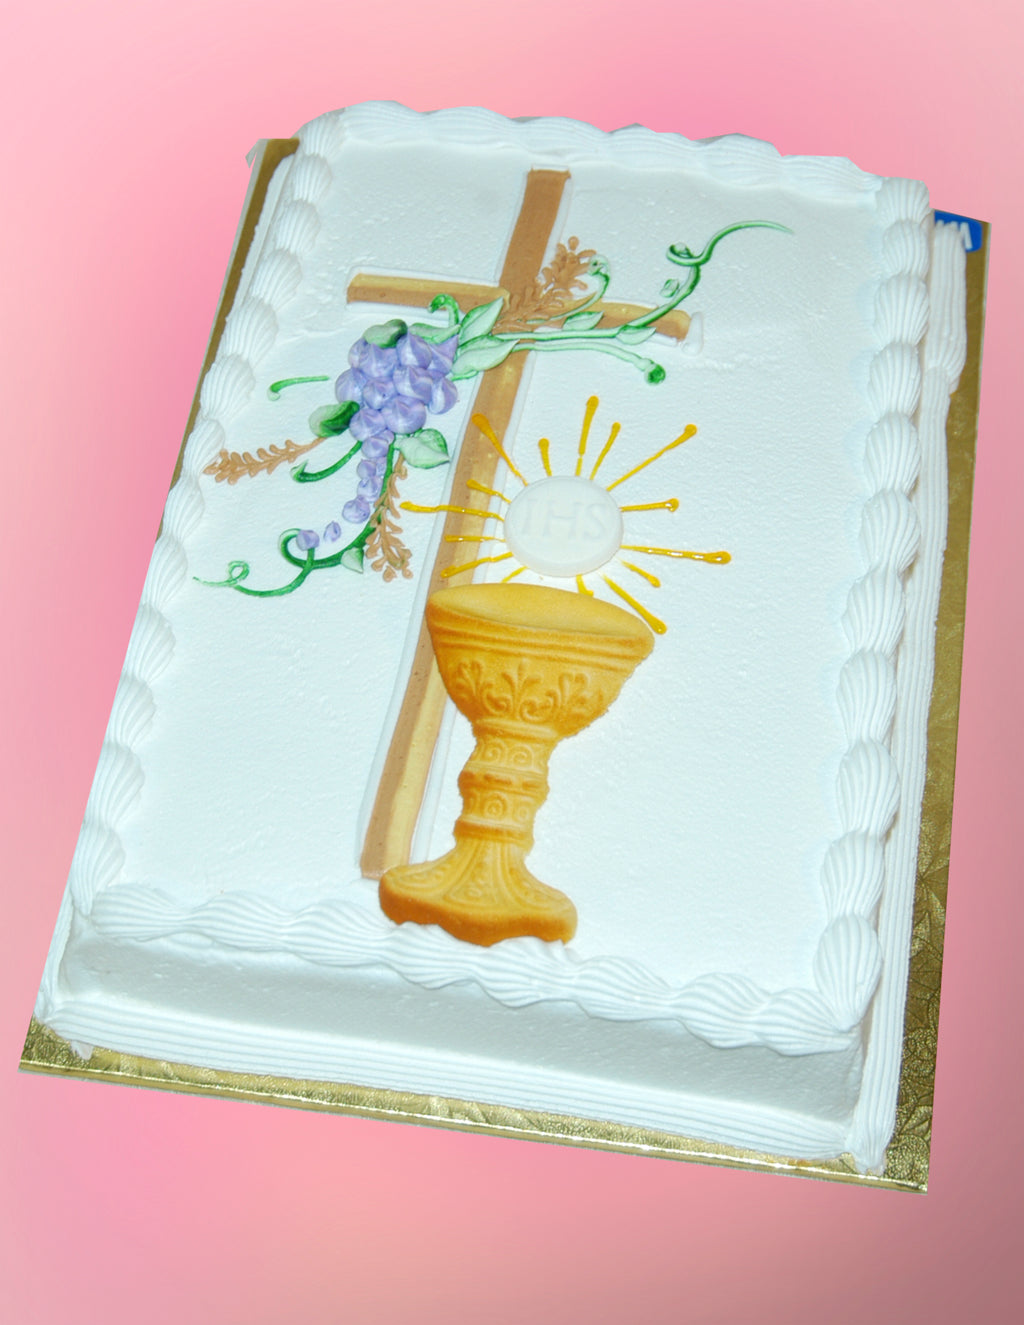 McArthur's Bakery Custom Cake with Cross, Grapes and Chalis